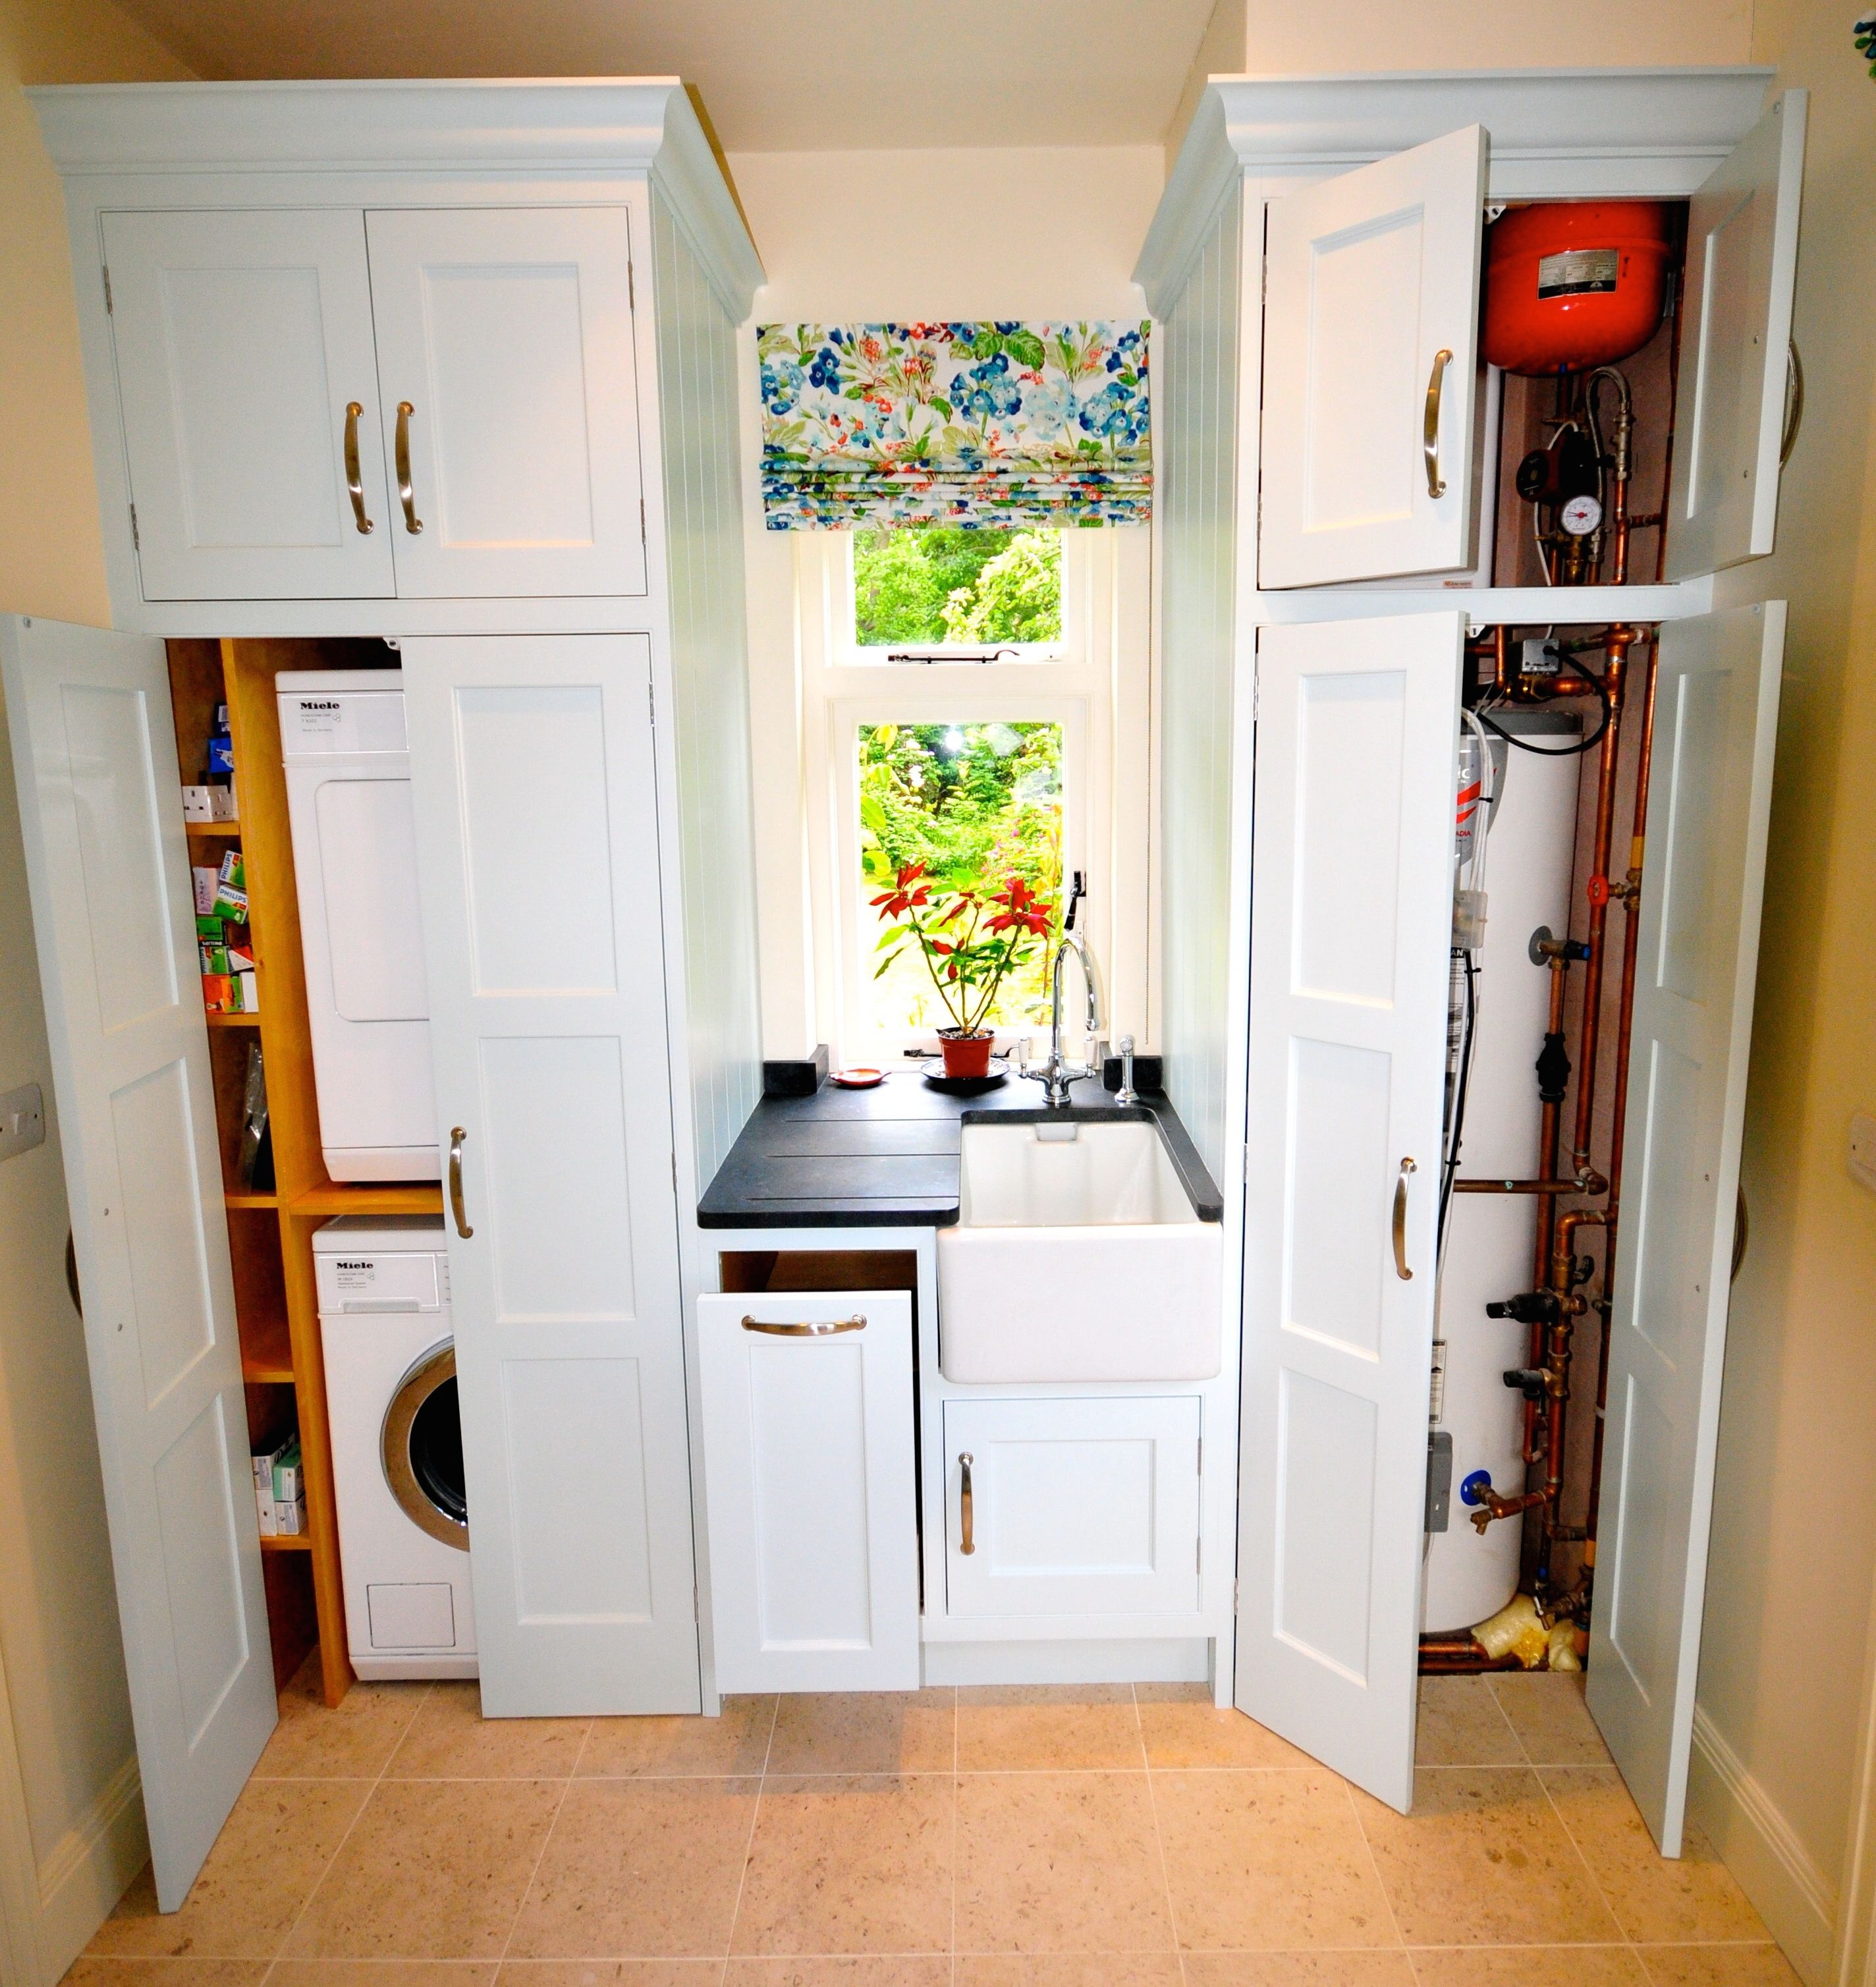 A fully fitted utility room. Making the most of the space